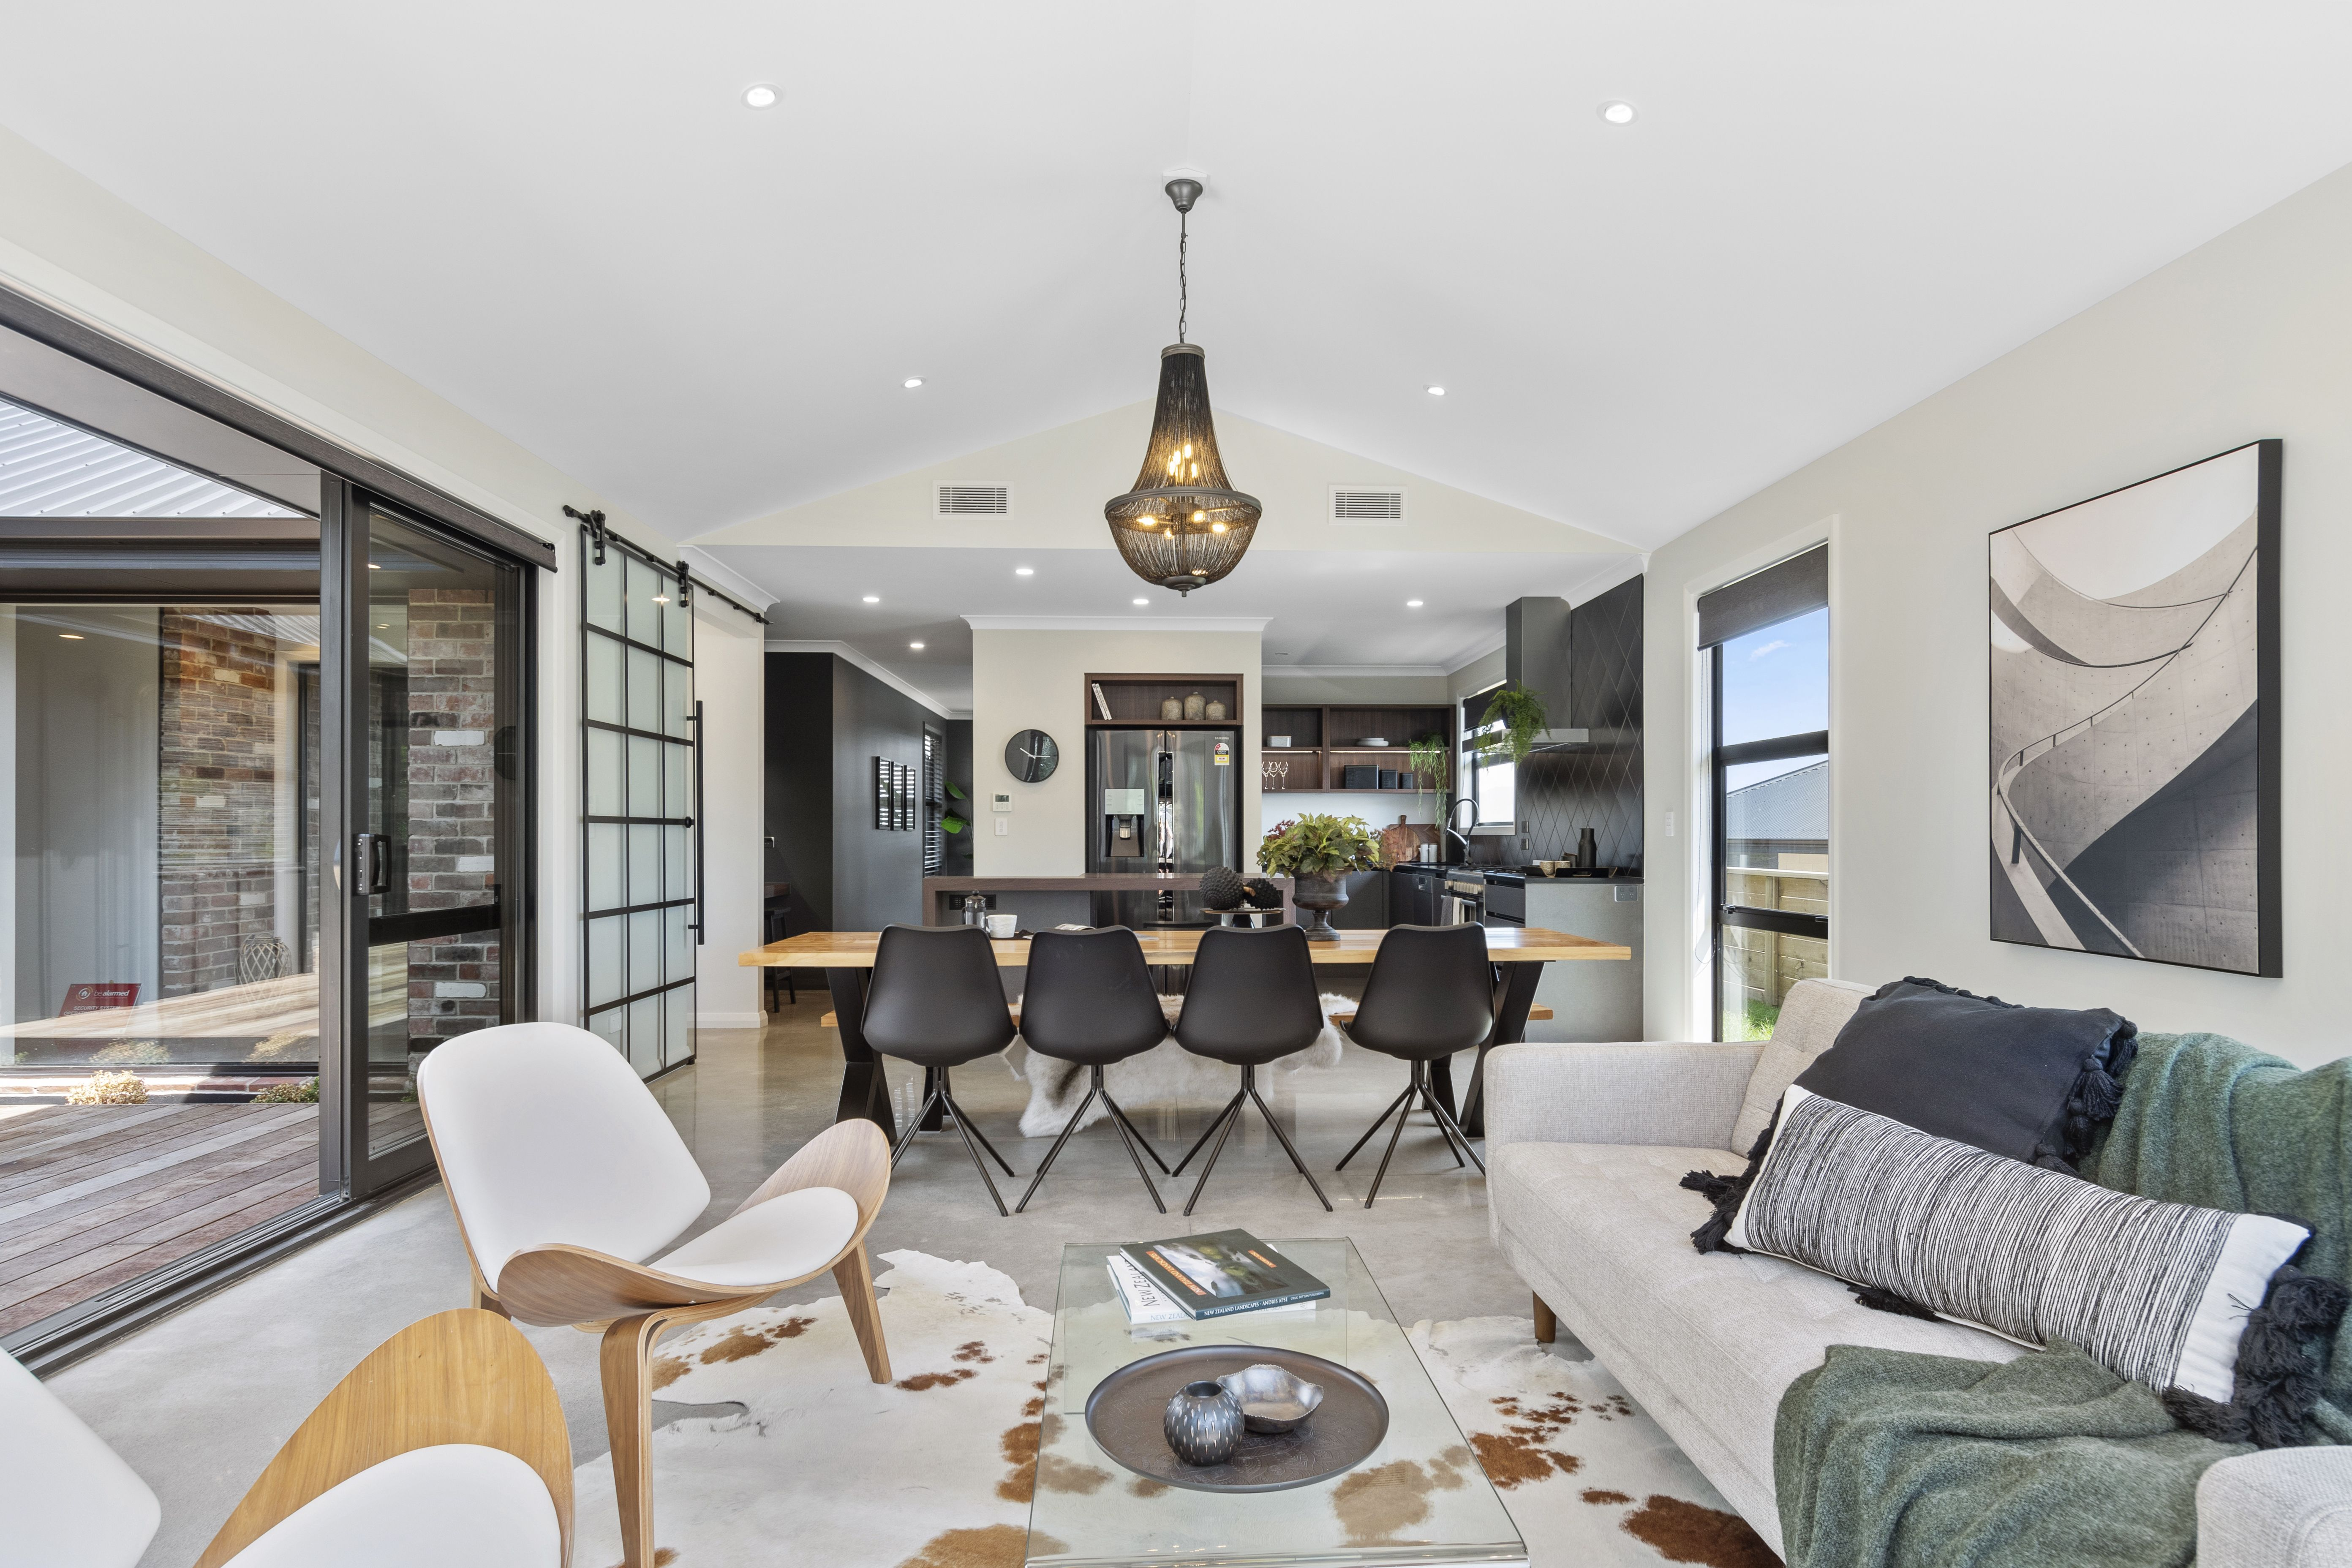 Interior Design Trends You Ll Love For 2020 2020 Interior Design Interior Design Styles Interior Design Home living room design style trends